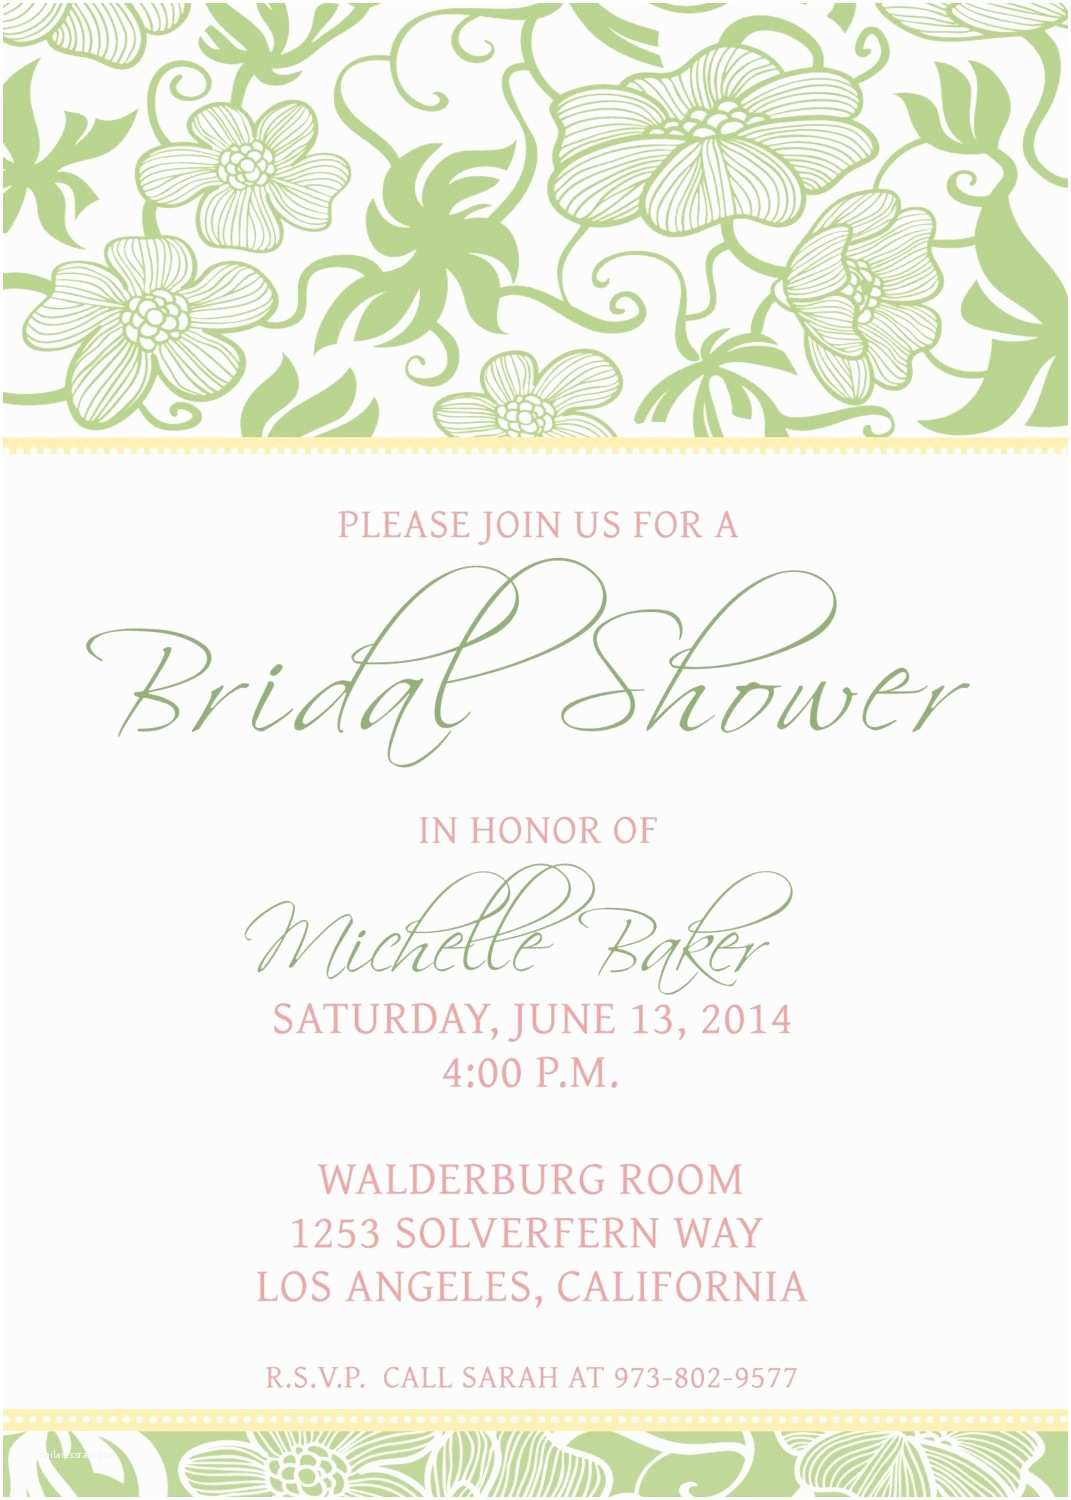 How to Make Own Wedding Invitations How to Make Your Own Wedding Invitations Template